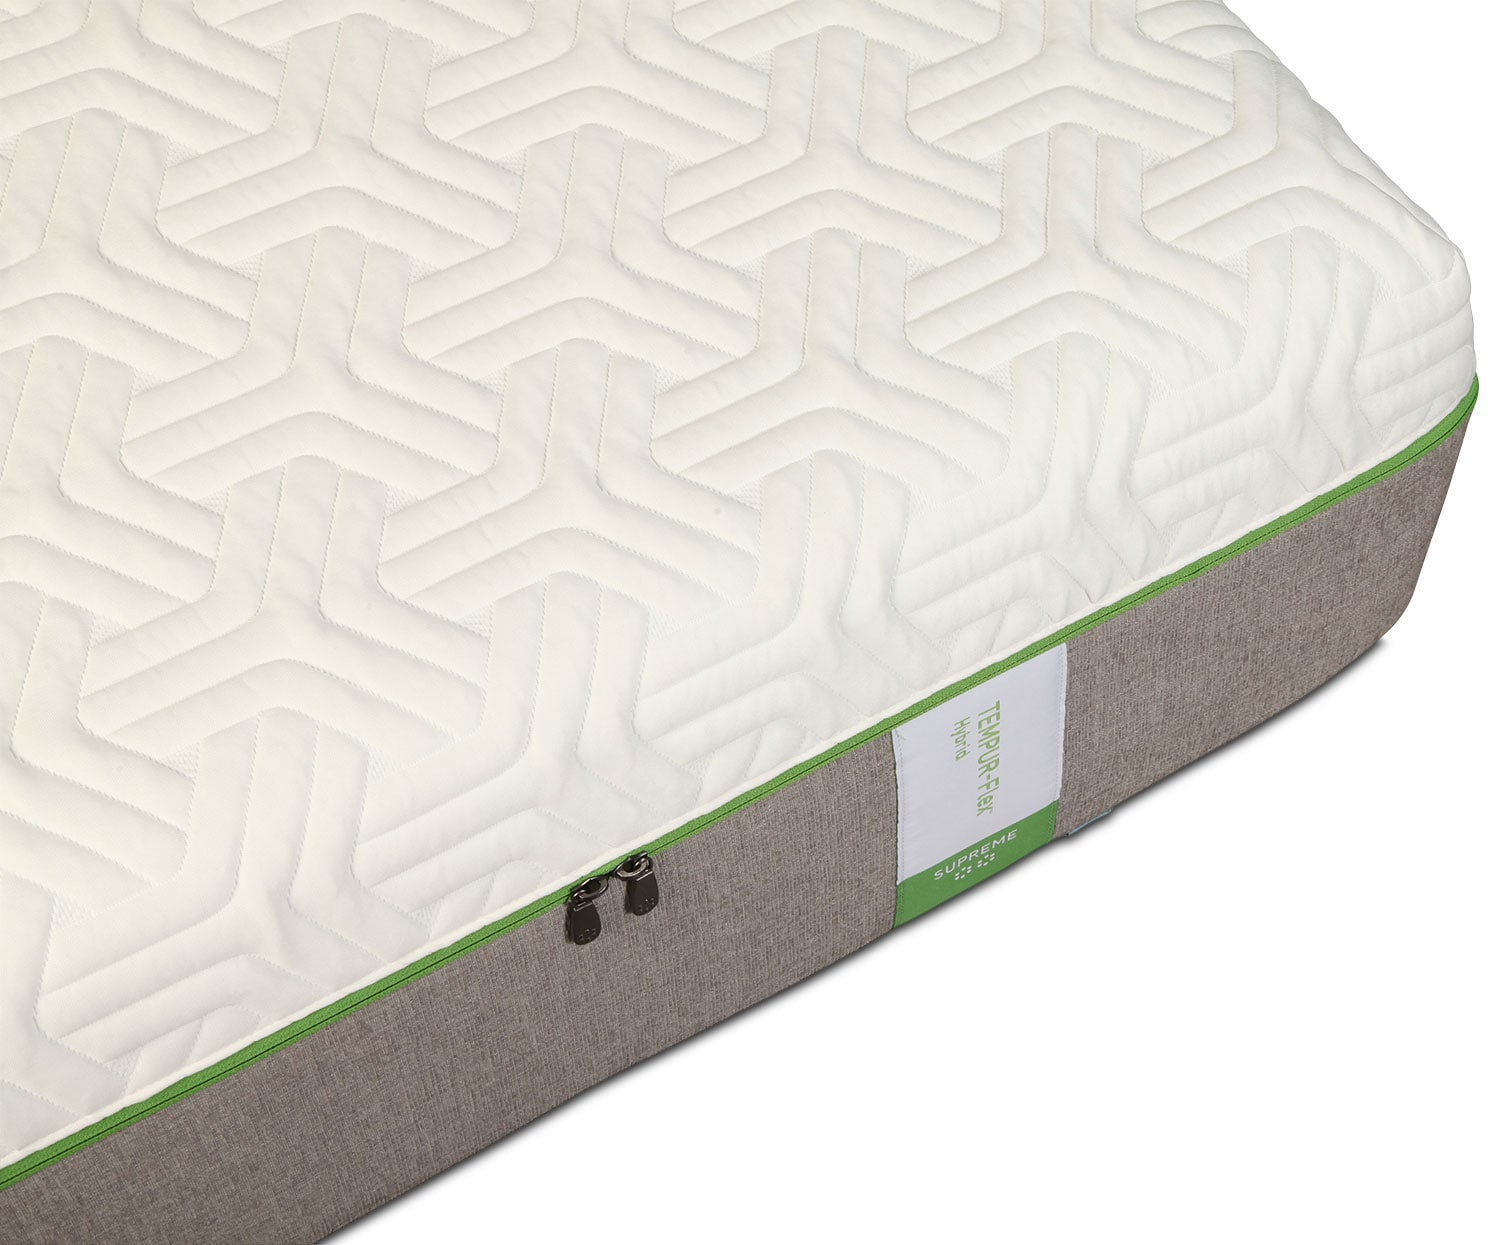 Tempur Pedic Flex Supreme Ca King Mattress Levin Furniture